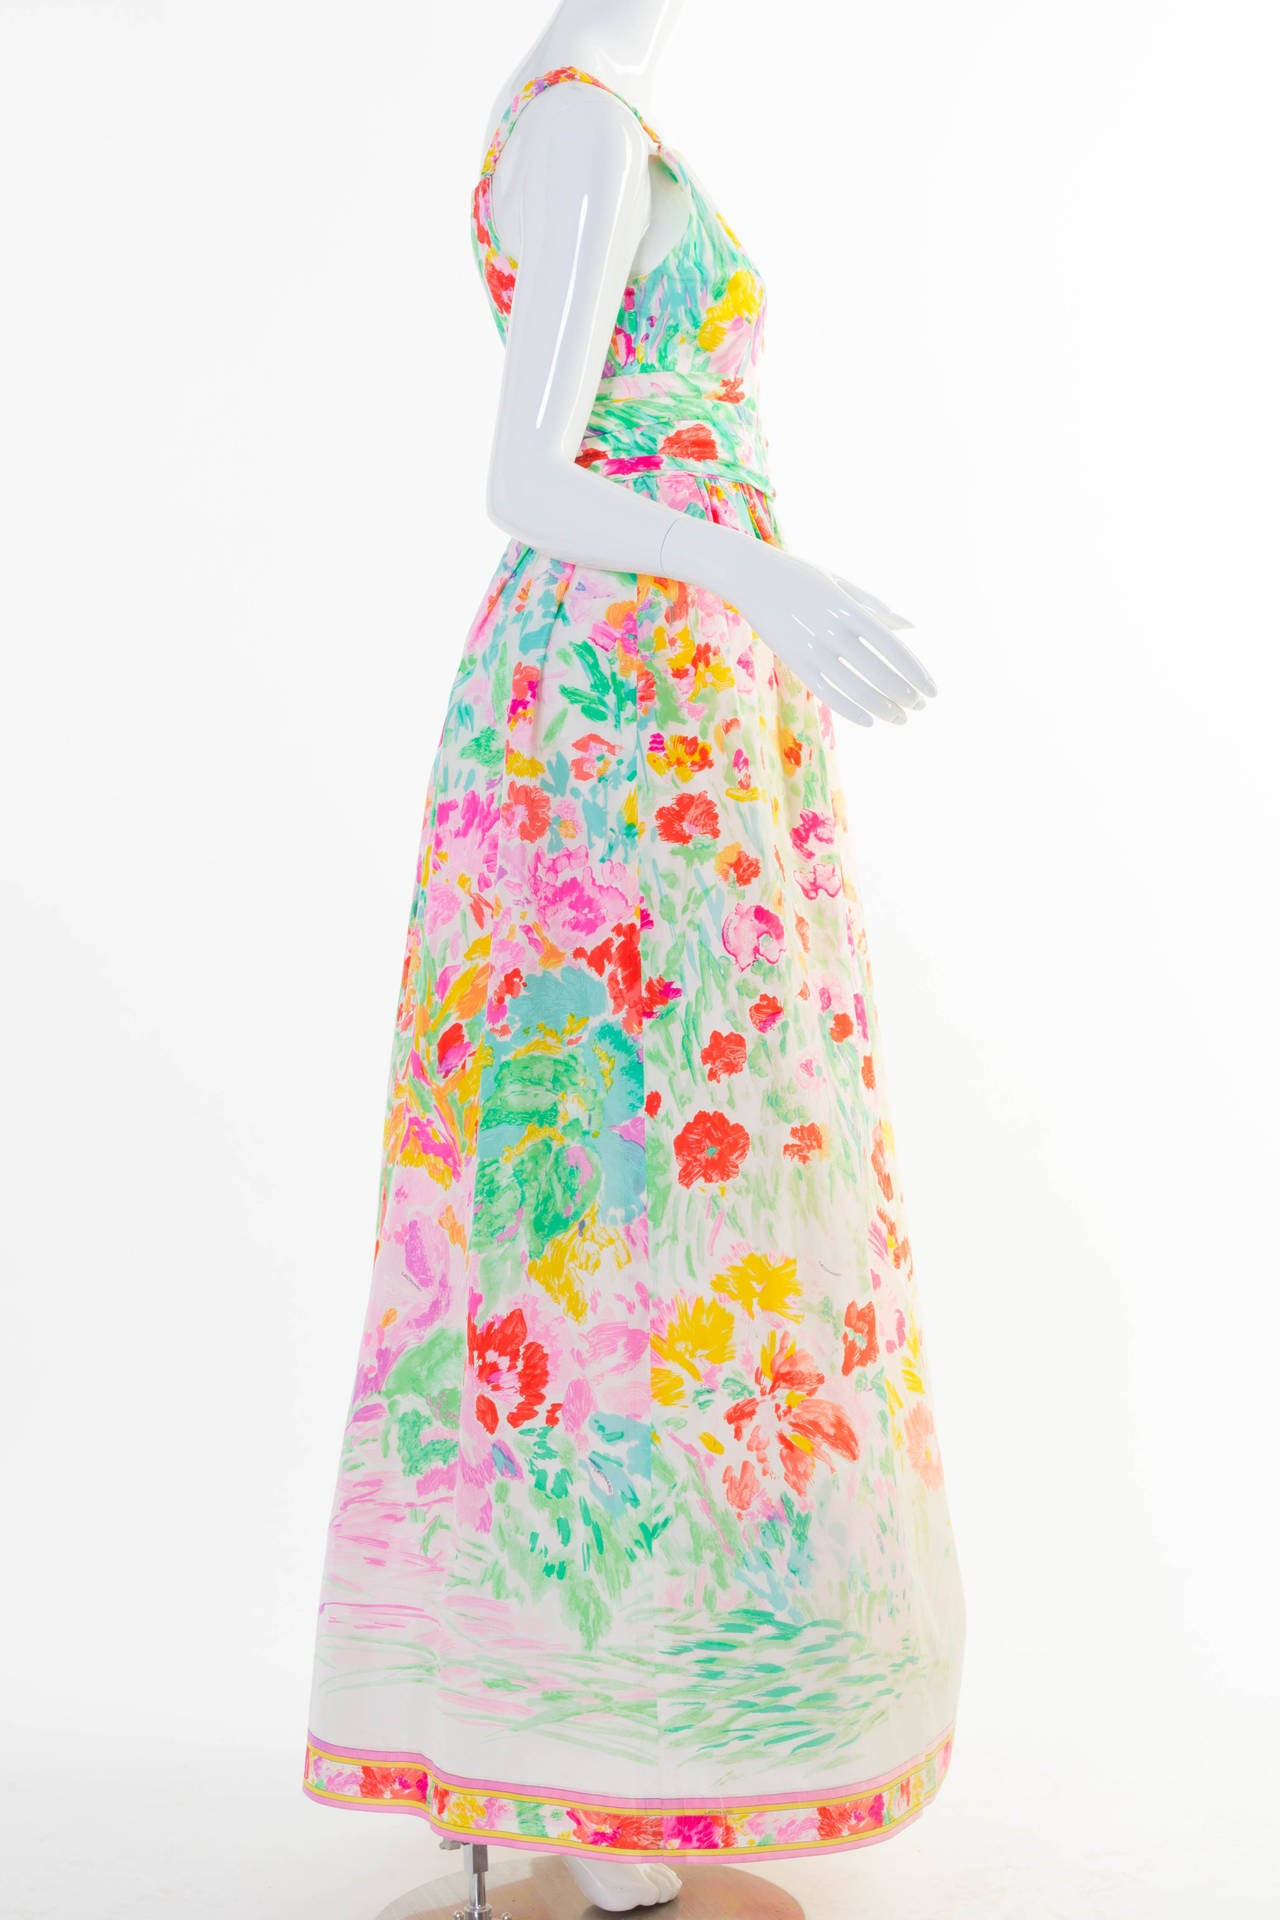 1990s Fabulous Leonard Paris Silk Floral Print Party Dress Gown In Excellent Condition For Sale In Boca Raton, FL